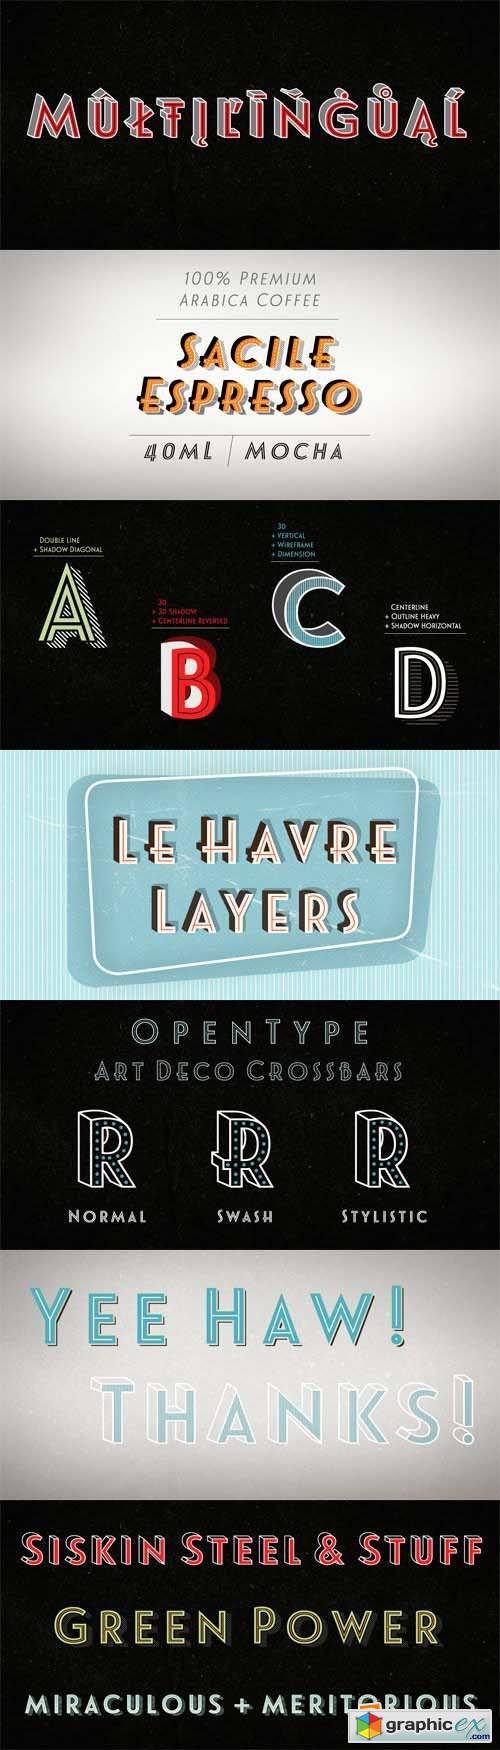 Le Havre Layers Font Family - 21 Fonts for $69